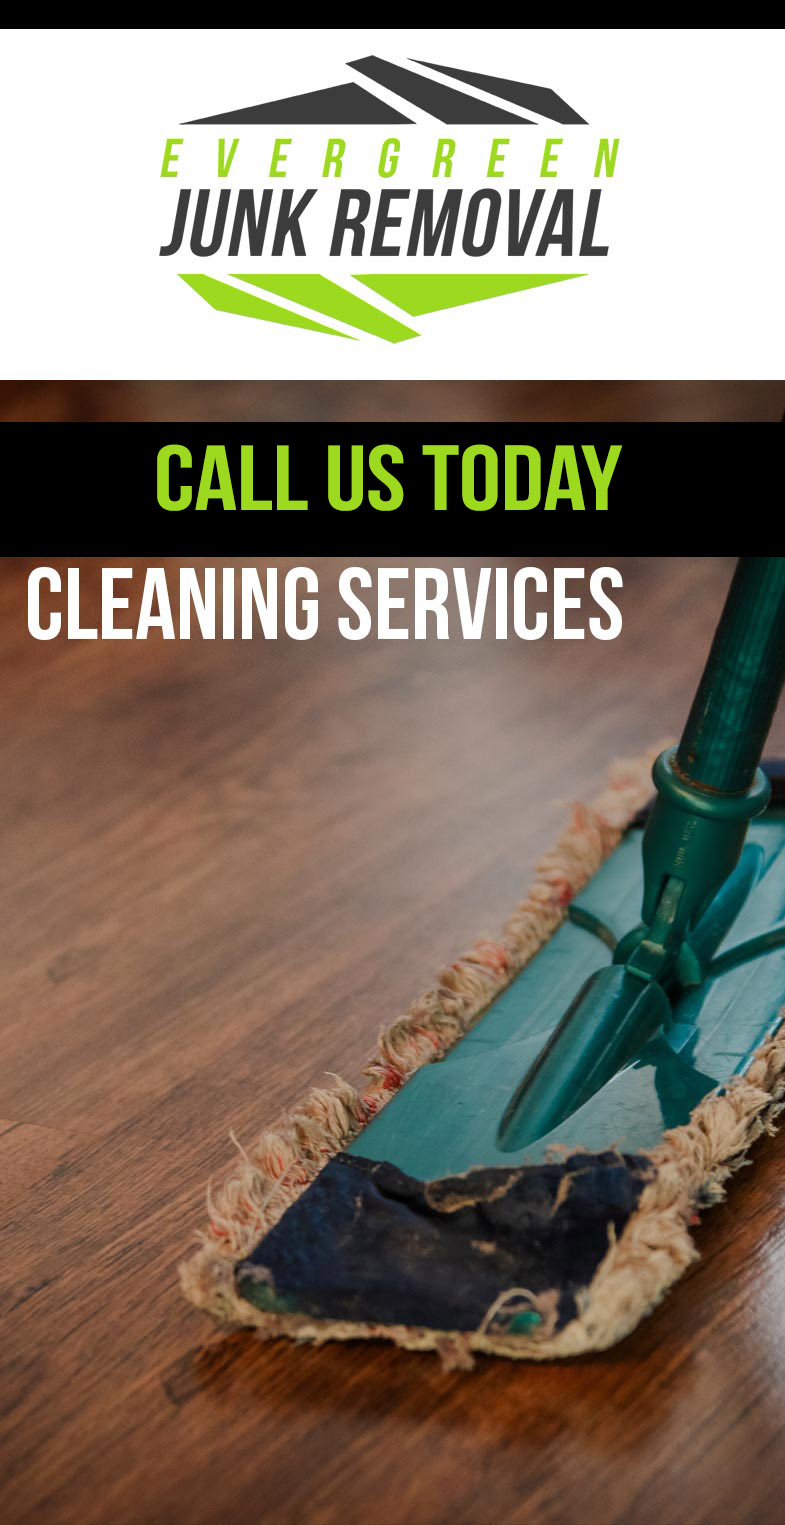 Pembroke Pines Florida Maid Services